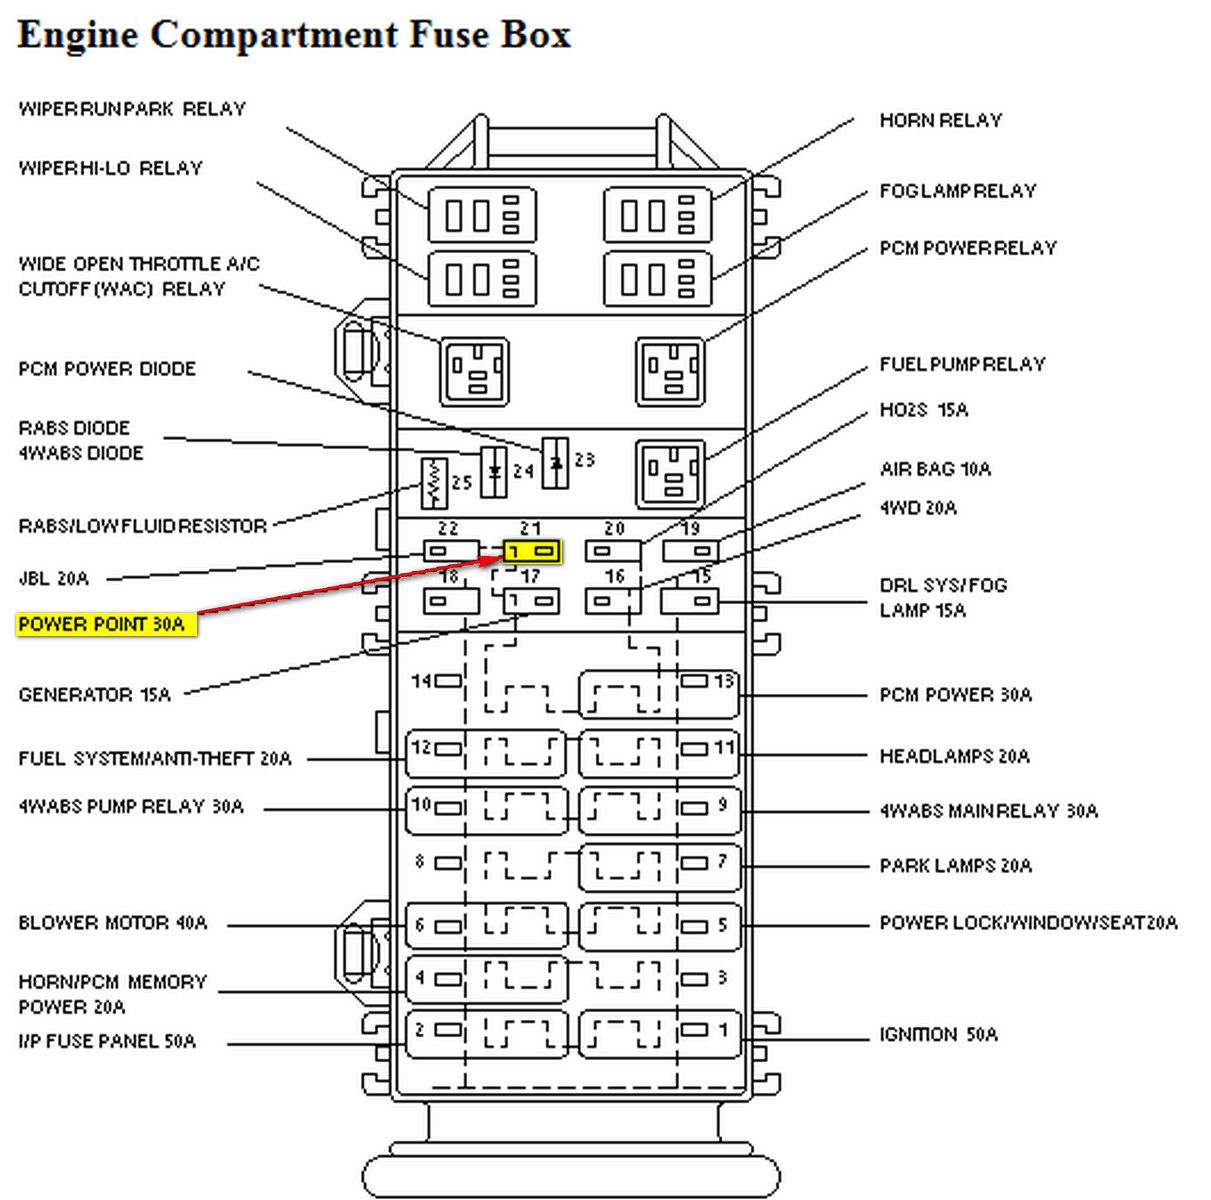 small resolution of 97 explorer fuse box wiring diagram fuse box diagram also leryn franco on 2001 ford e350 fuel pump relay